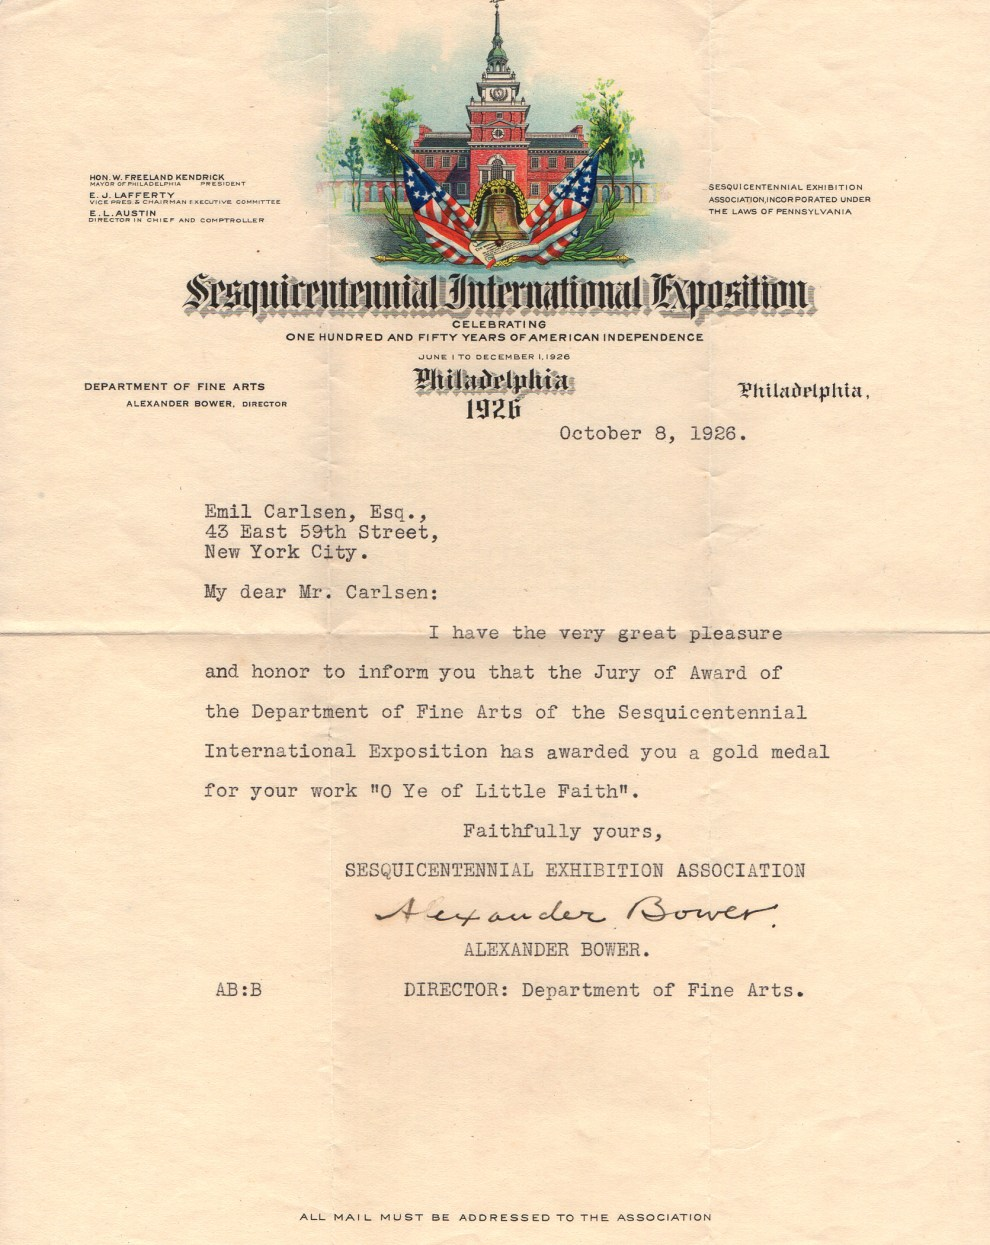 """Sesquicentennial International Exposition Gold Medal for O Ye of Little Faith"" provided by Linda Hay, Fair Grounds for the World's Fair, Philadelphia, PA, October 8, 1926"